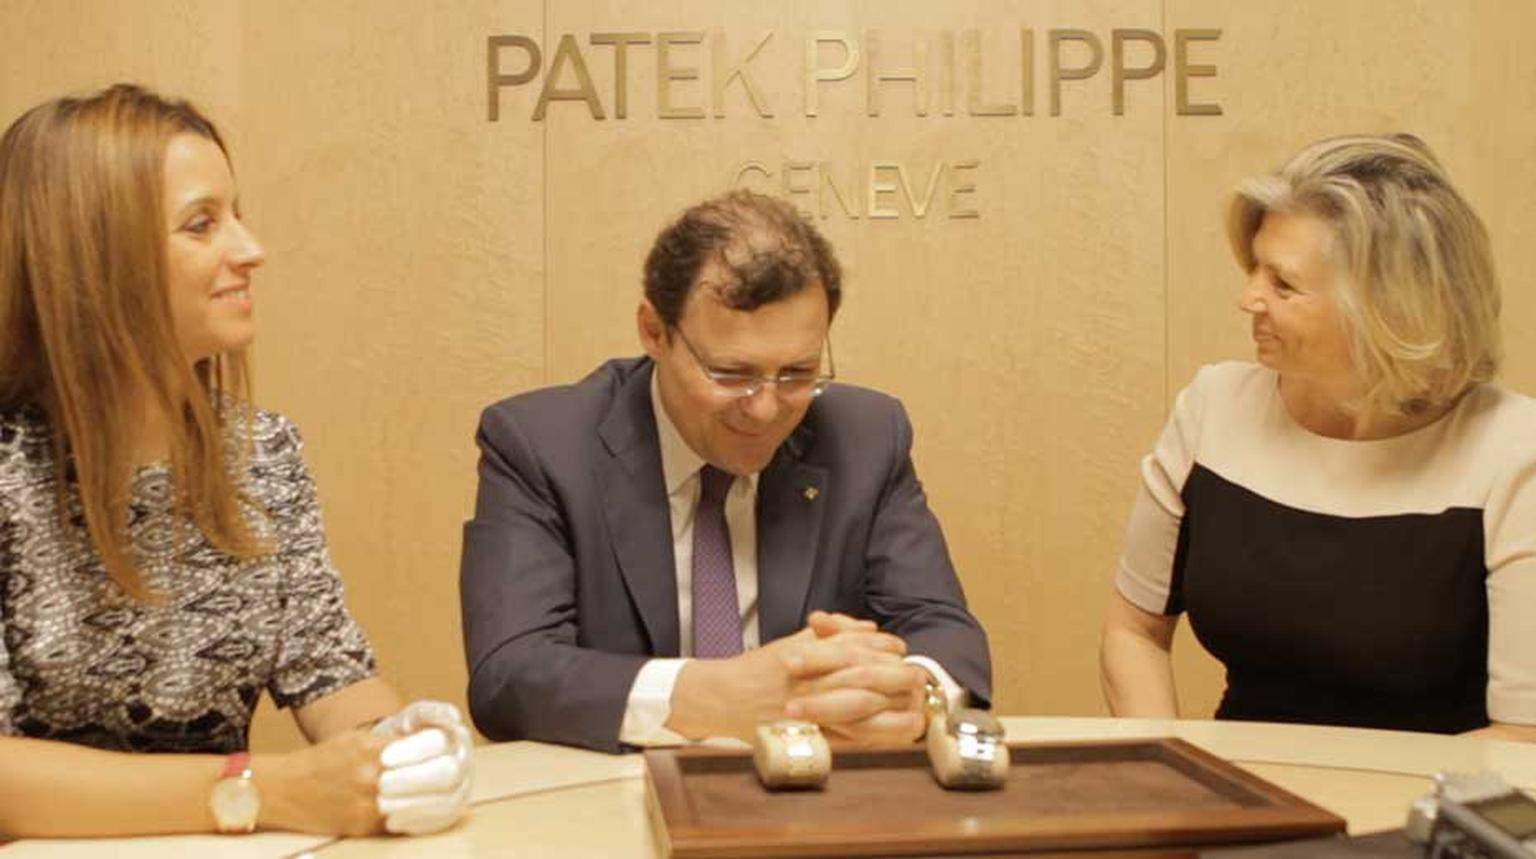 Maria Doulton sat down with Thierry Stern, President of Patek Philippe, and his wife, Sandrine Stern, who is in charge of design, at Baselworld to discuss the brand's newest watches for men and women: the Nautilus and the Calatrava Moon phase